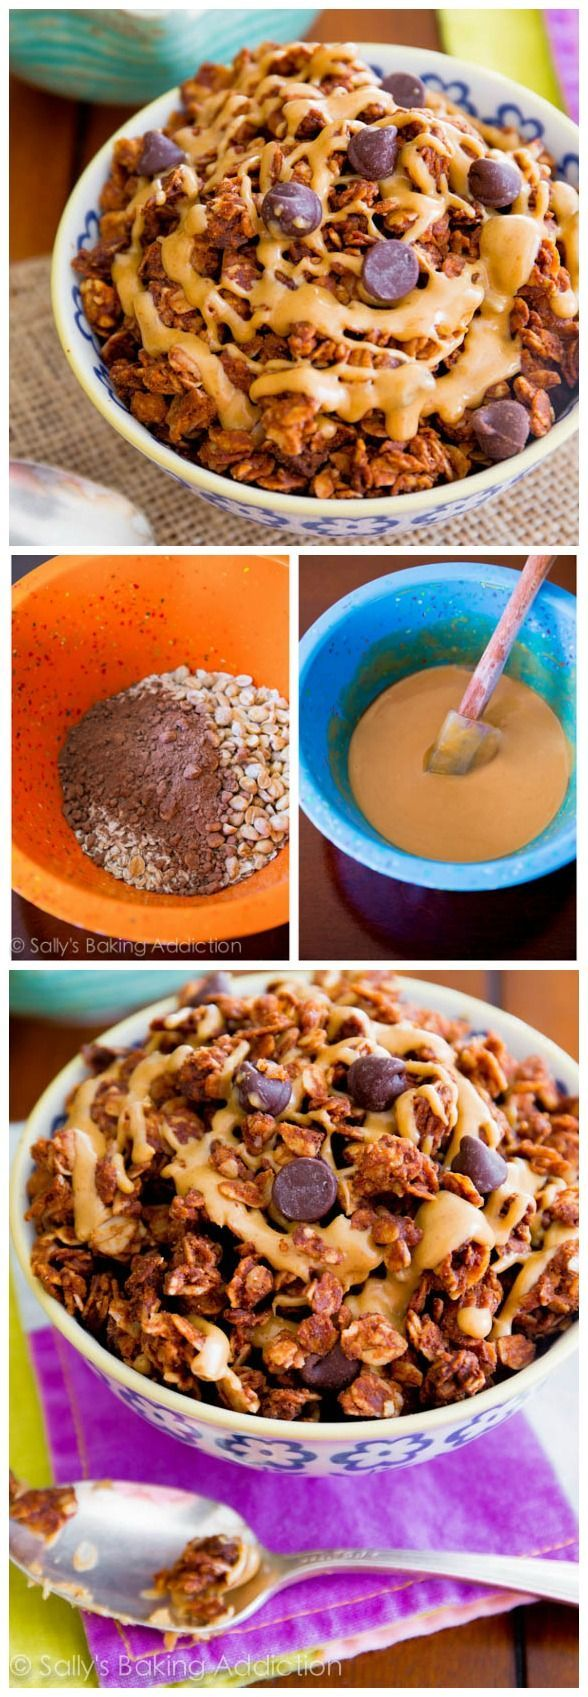 Only 7 ingredients needed to make this healthy, indulgent-tasting chocolate peanut butter granola!